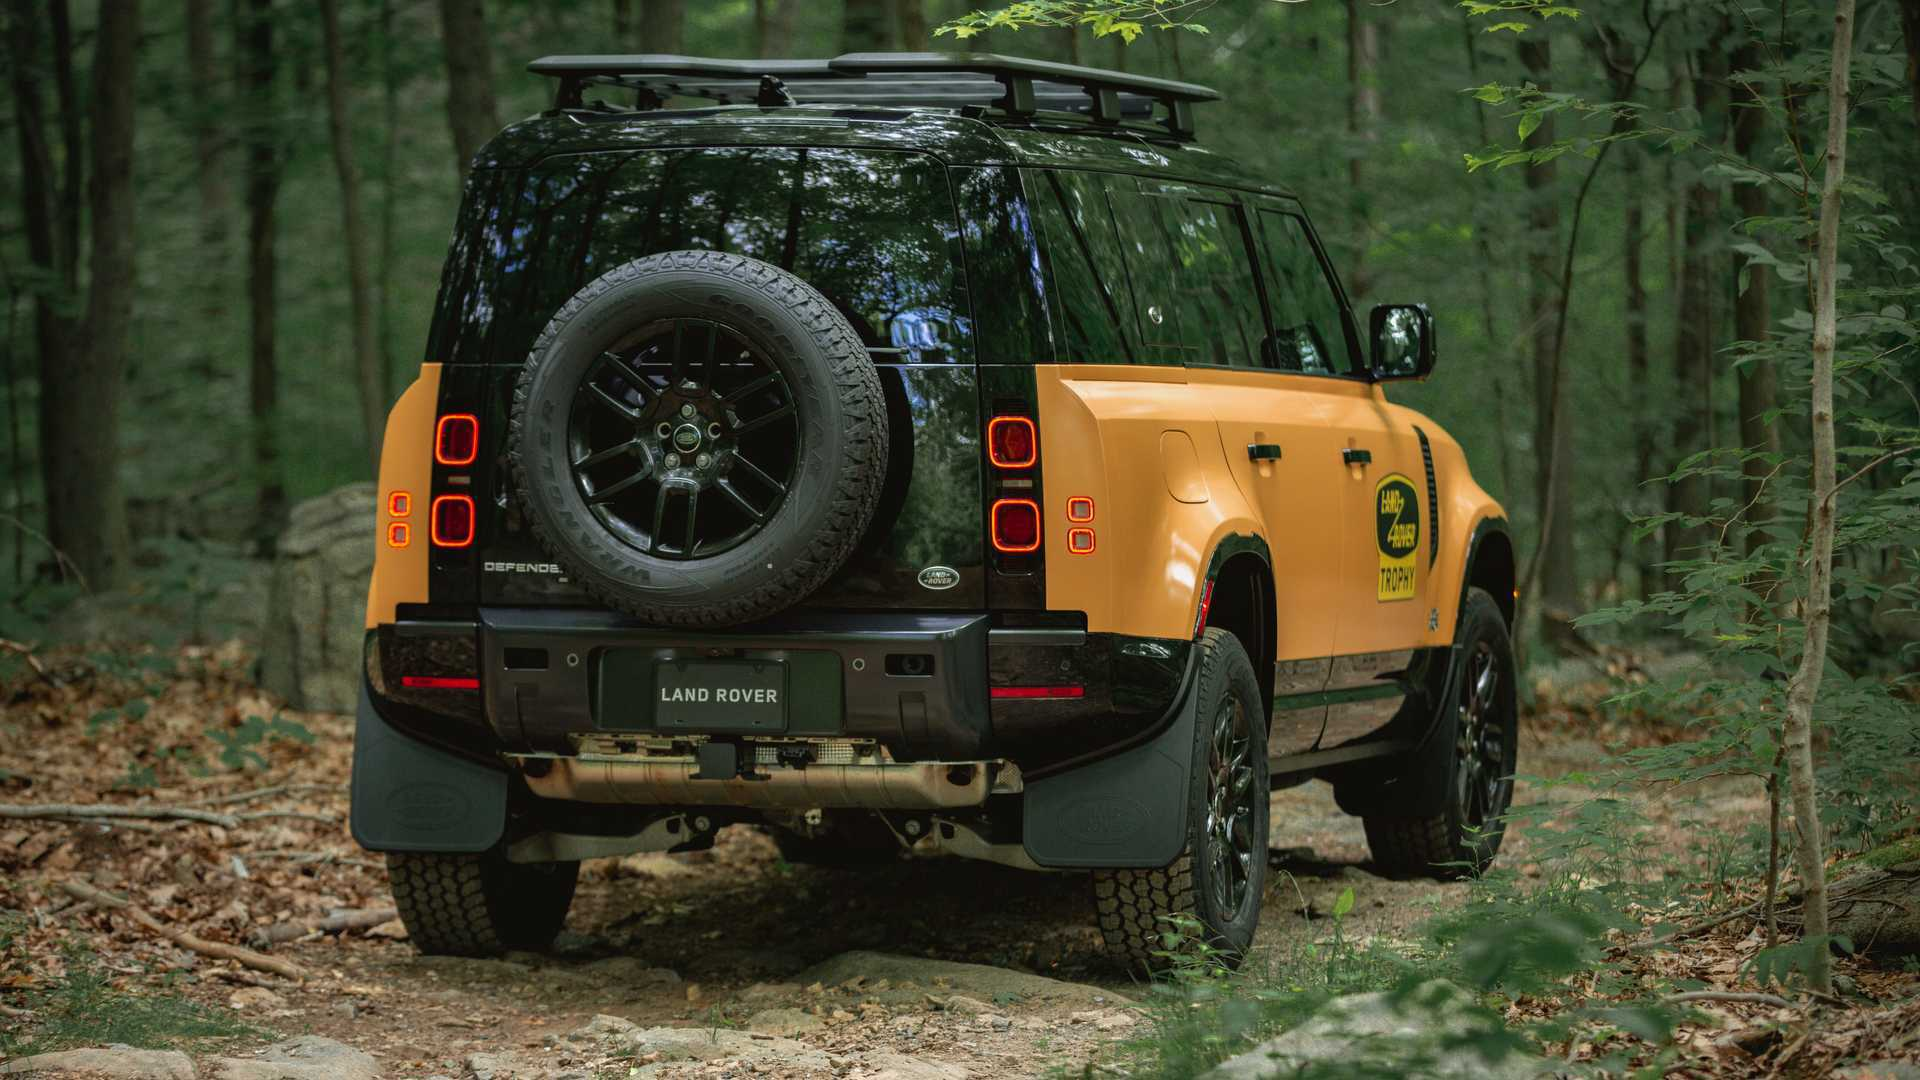 land-rover-defender-trophy-edition-rear-angle.jpg